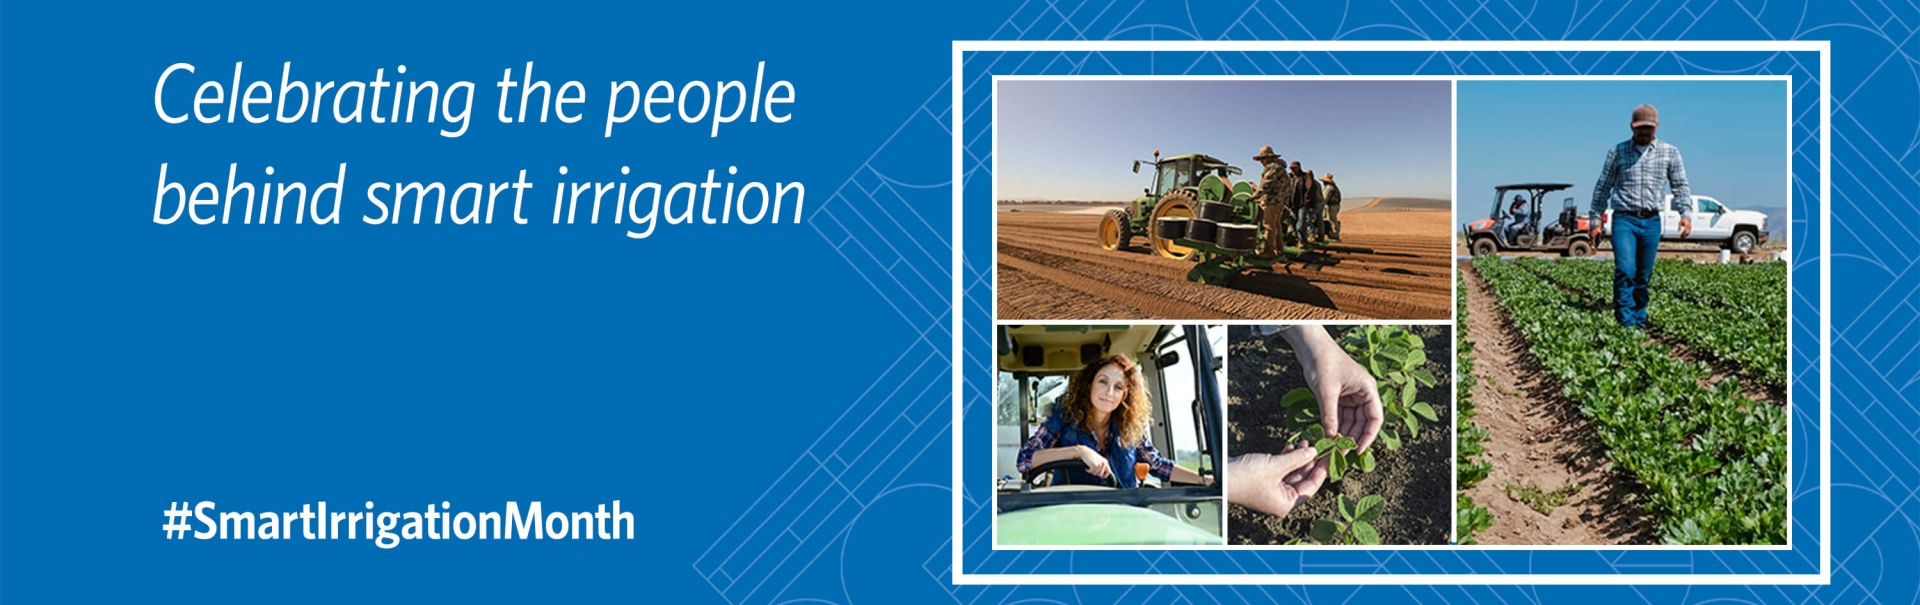 Celebrating the people behind smart irrigation